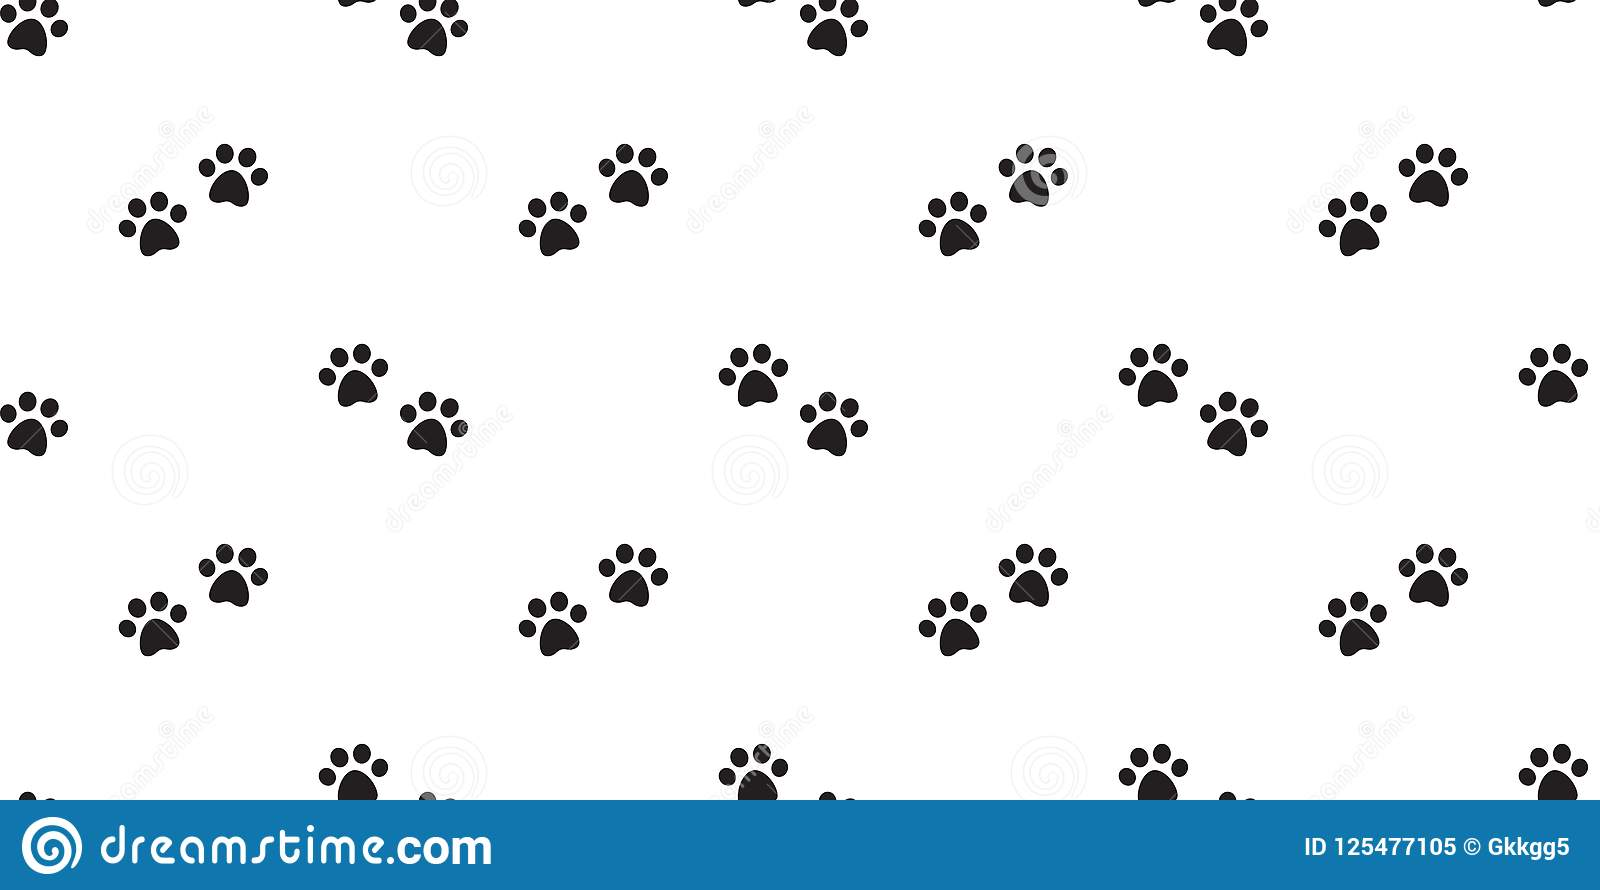 Dog Paw Seamless Pattern Vector Cat Footprint Isolated Repeat Background Wallpaper